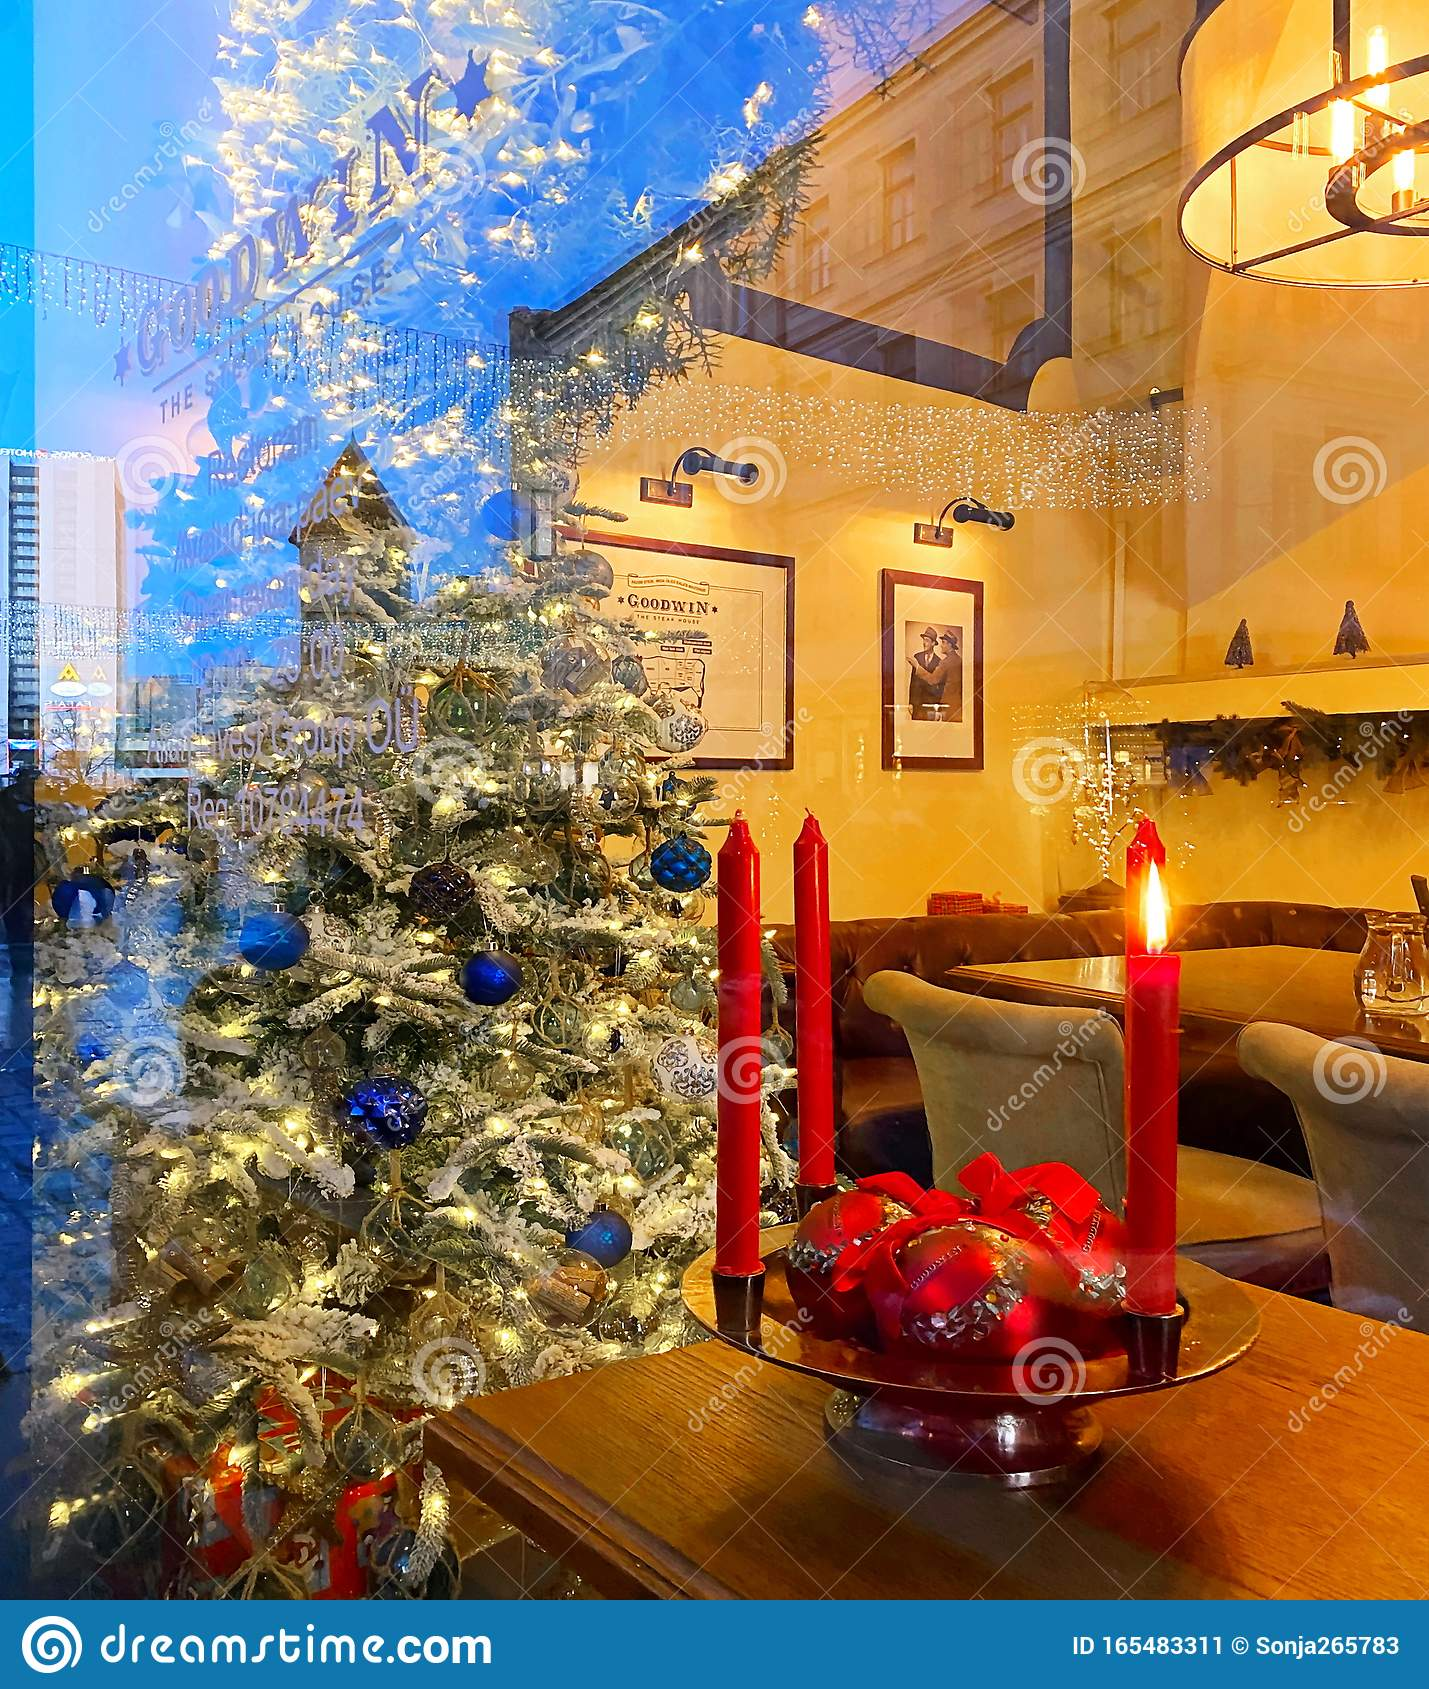 Christmas Street Cafe Evening Light Windows Reflection Christmas Red Candle On Table Top In Restaurant Yellow Blue Red Shop Stock Image Image Of Light Cityscape 165483311